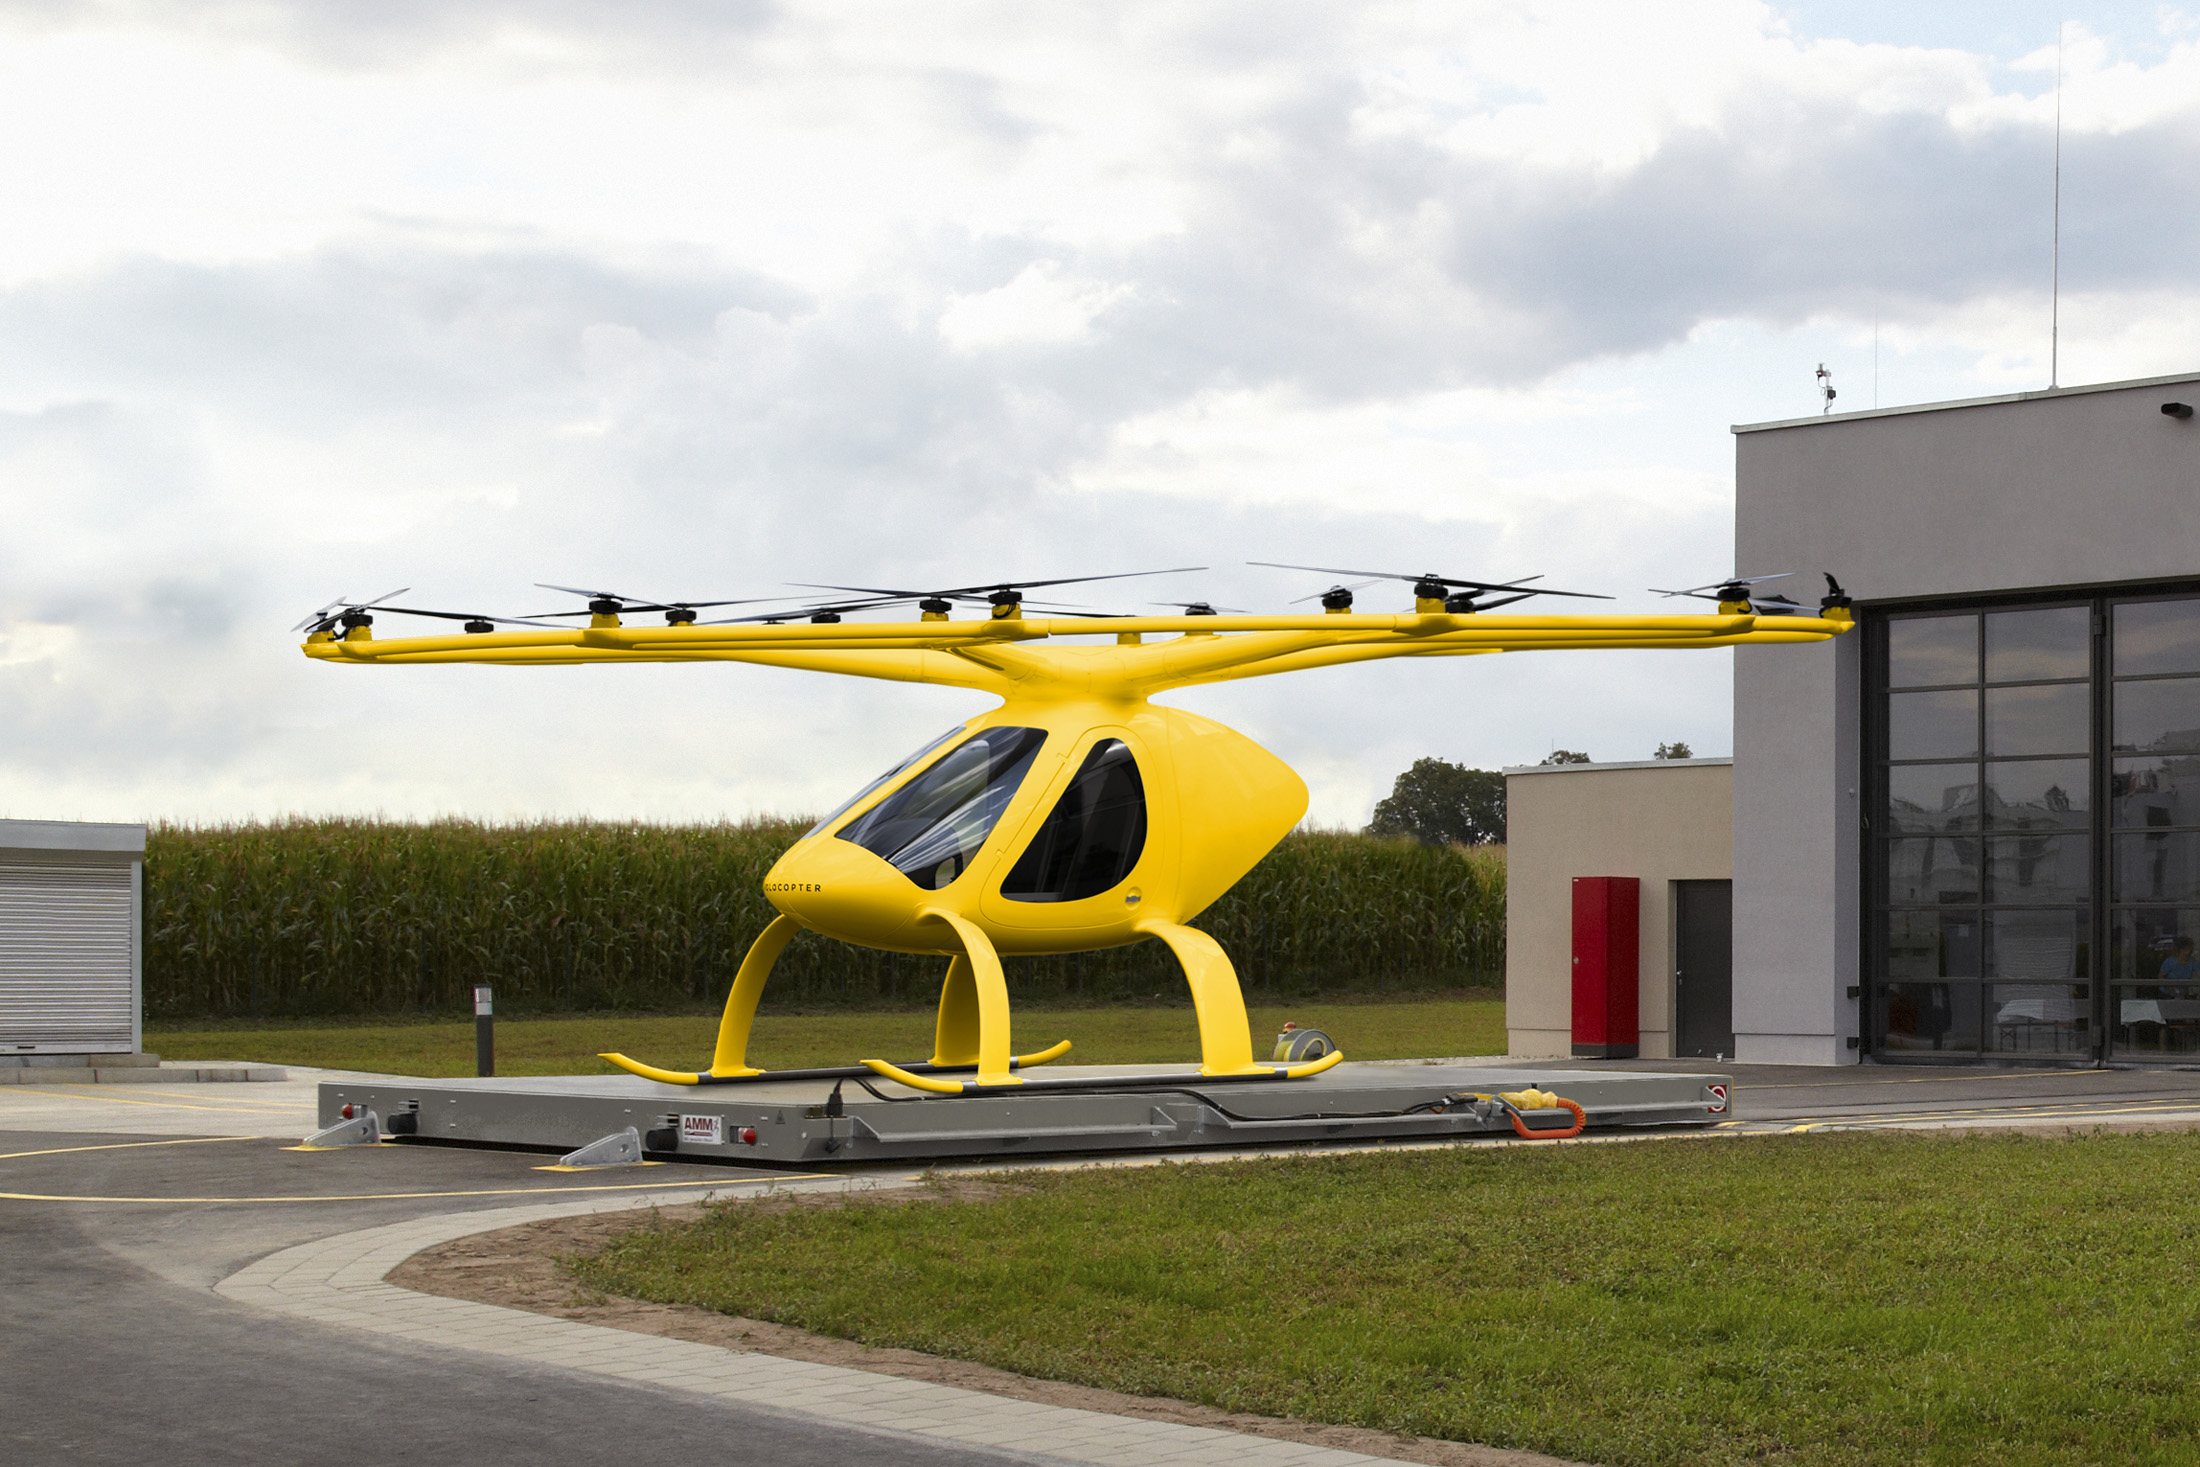 ADAC plans to trial Volocopter's electric VTOL aircraft as air shuttles for emergency doctors.